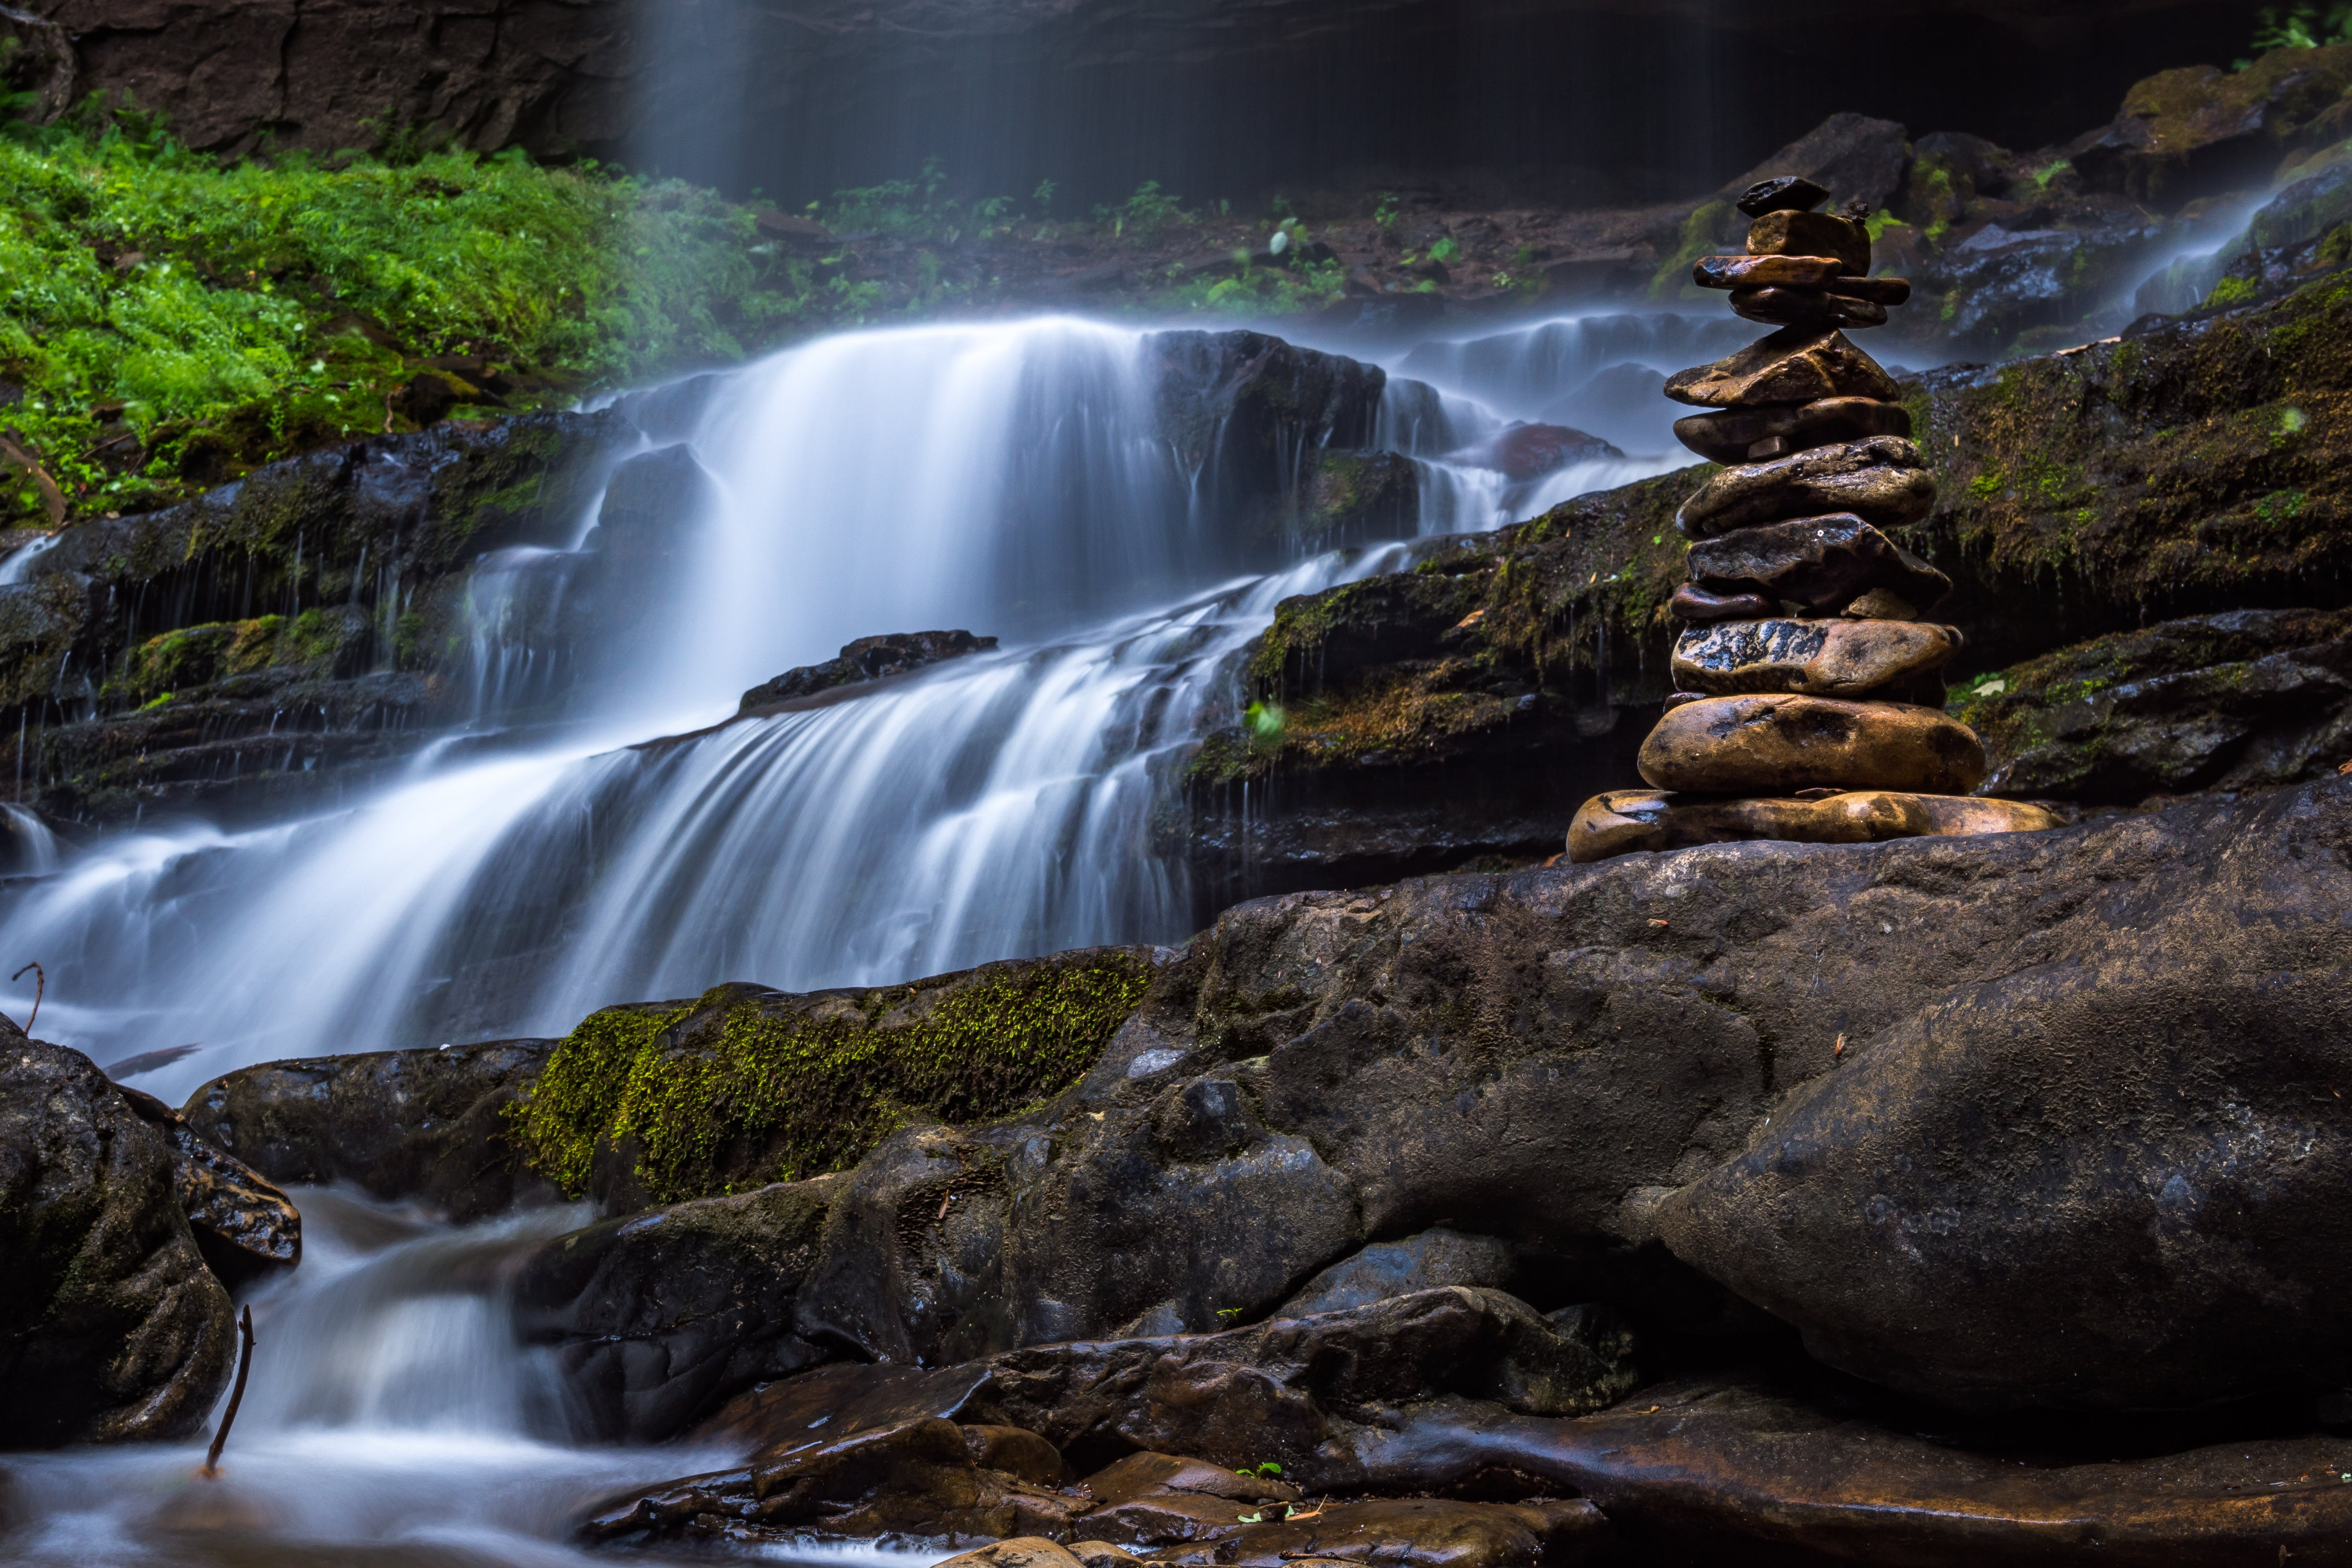 Balancing Stones on Waterfalls